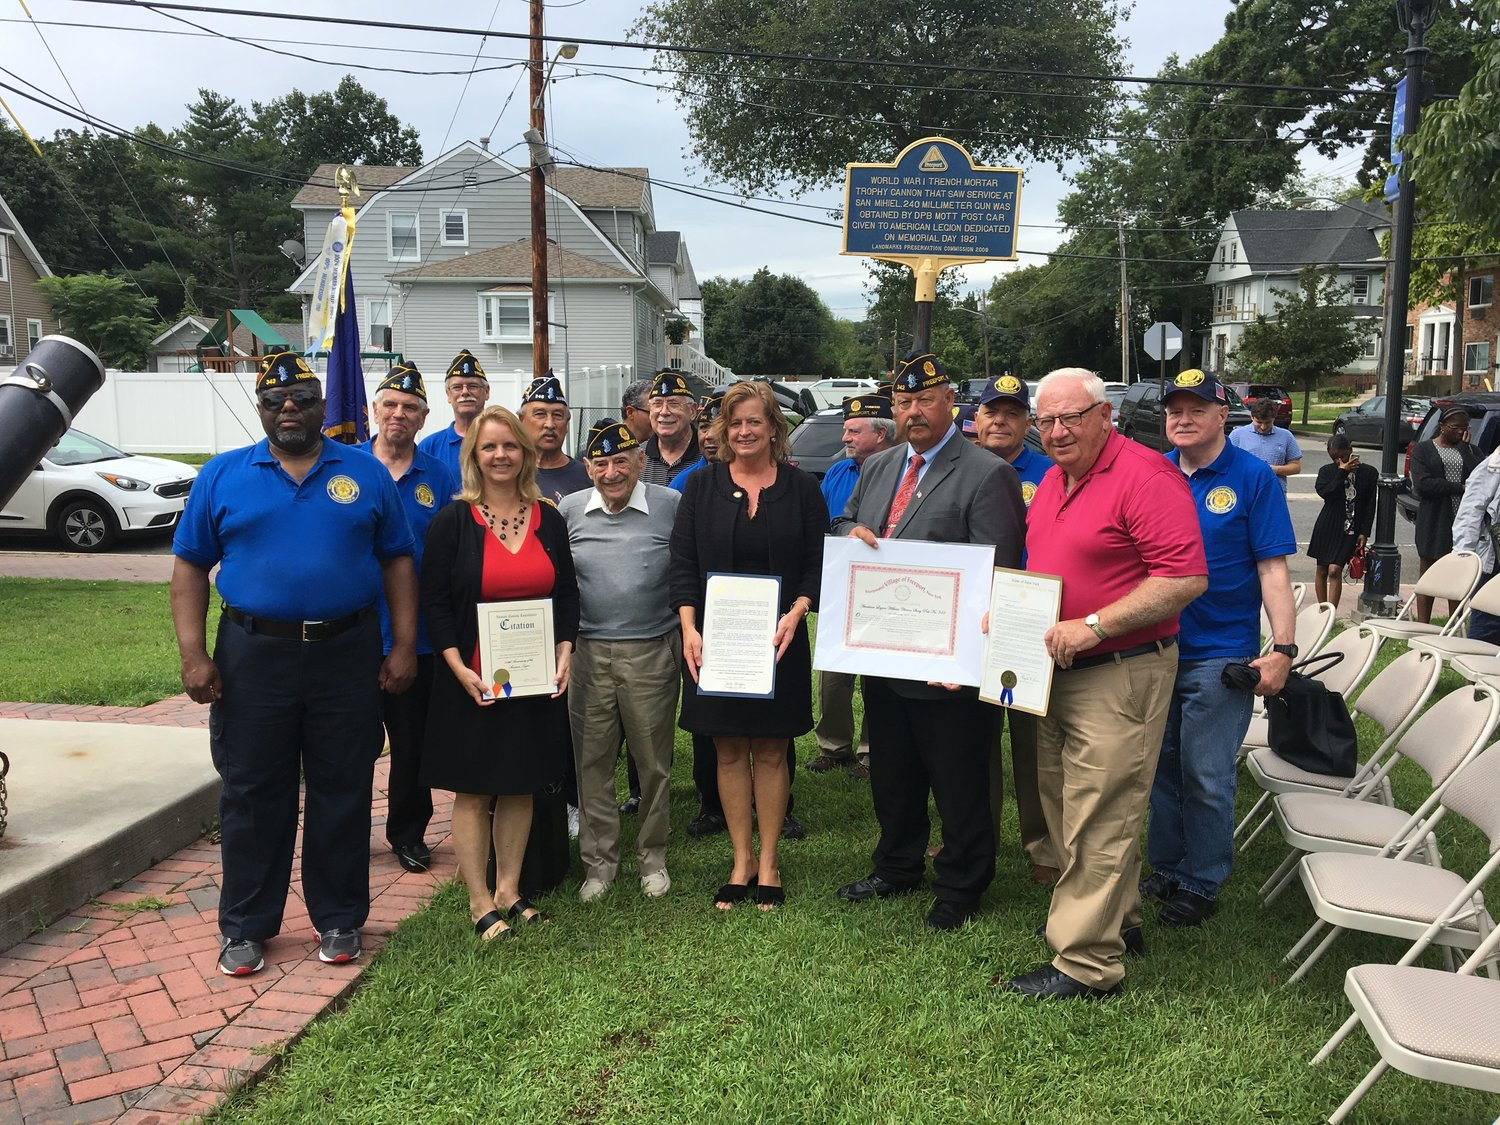 Local elected officials stood with veterans as they were presented with citations and proclamations recognizing the 100th anniversary of the Baldwin and Freeport American Legions.